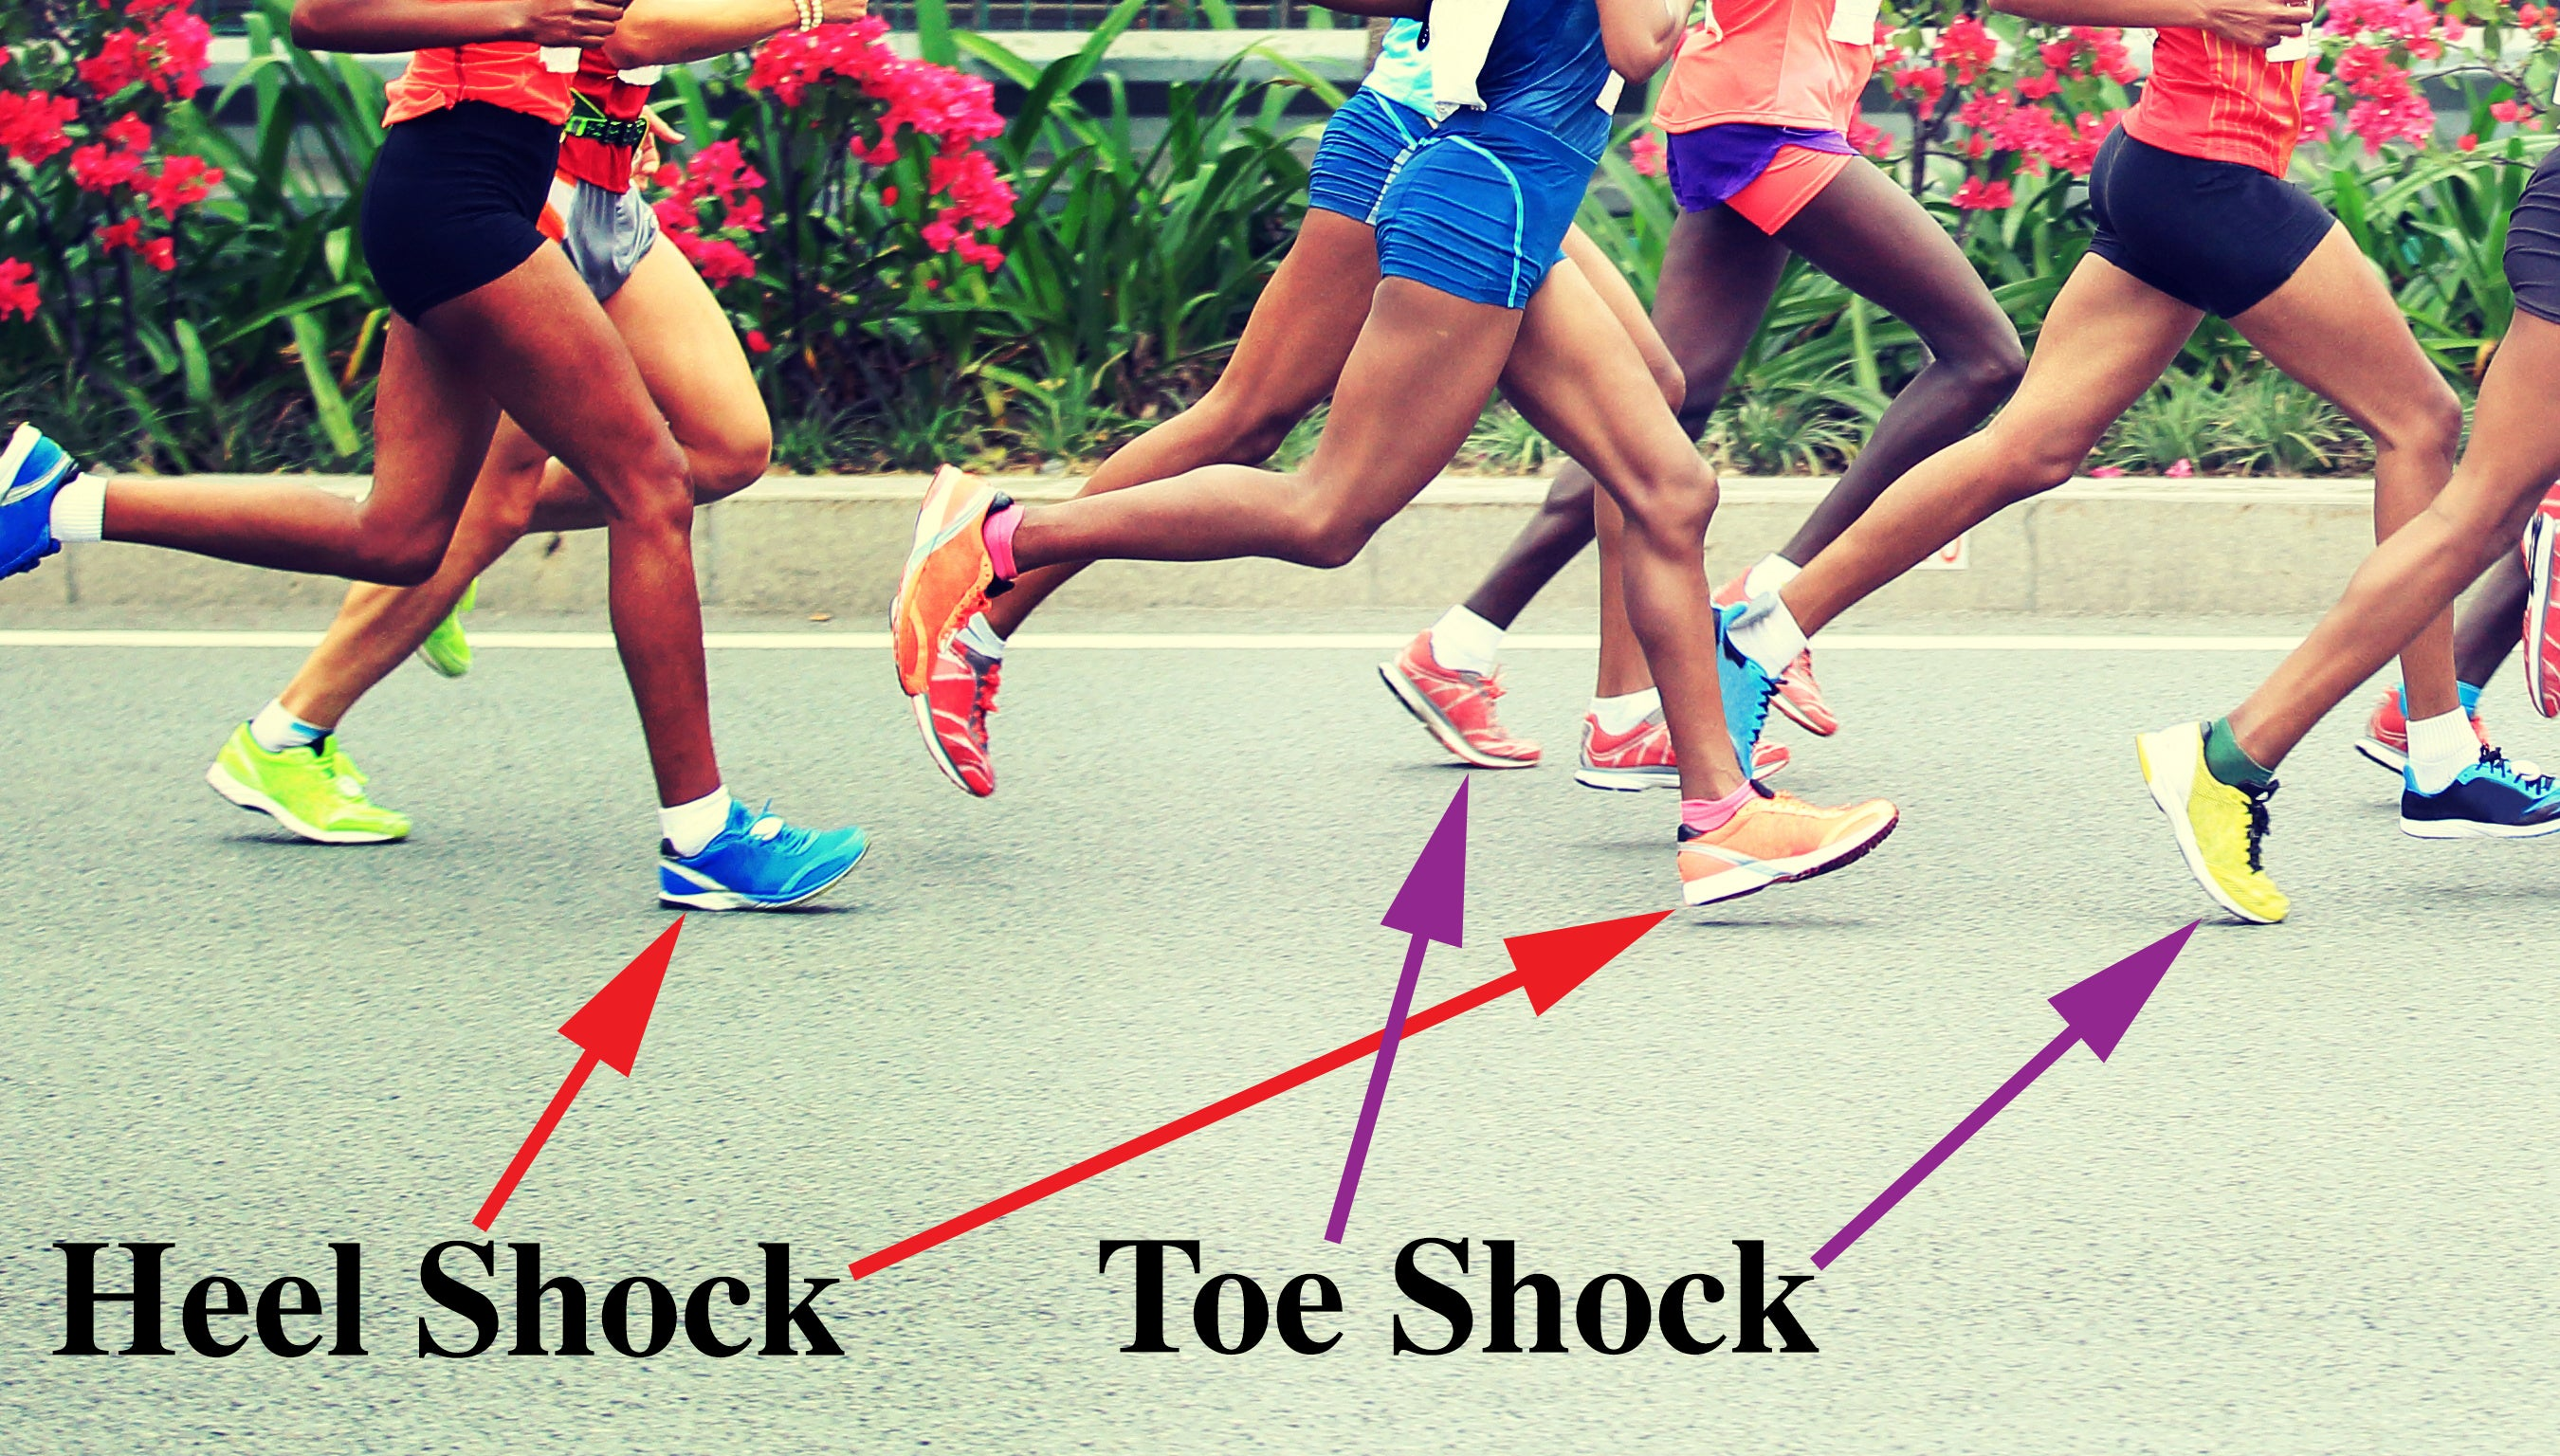 Heel Shock and Toe Shock